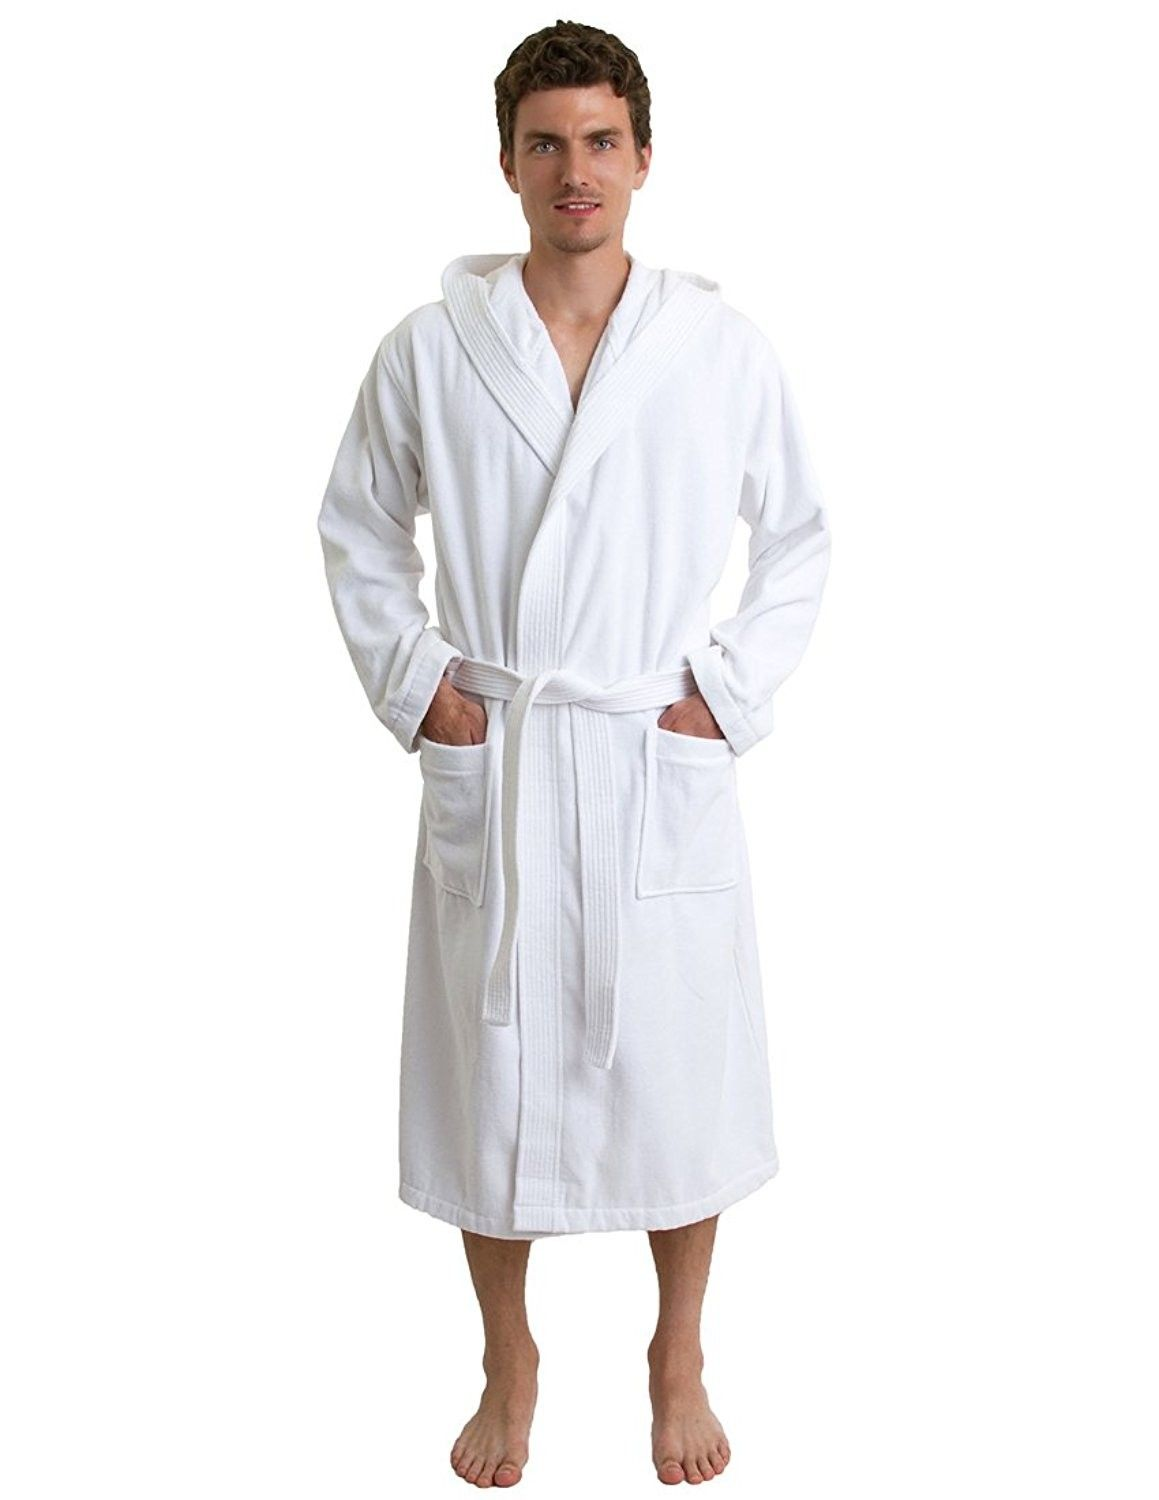 b9c49df3c2 Men s Robe- Hooded Terry Velour Cotton Bathrobe Made in Turkey - White -  CT11KJIDP6B